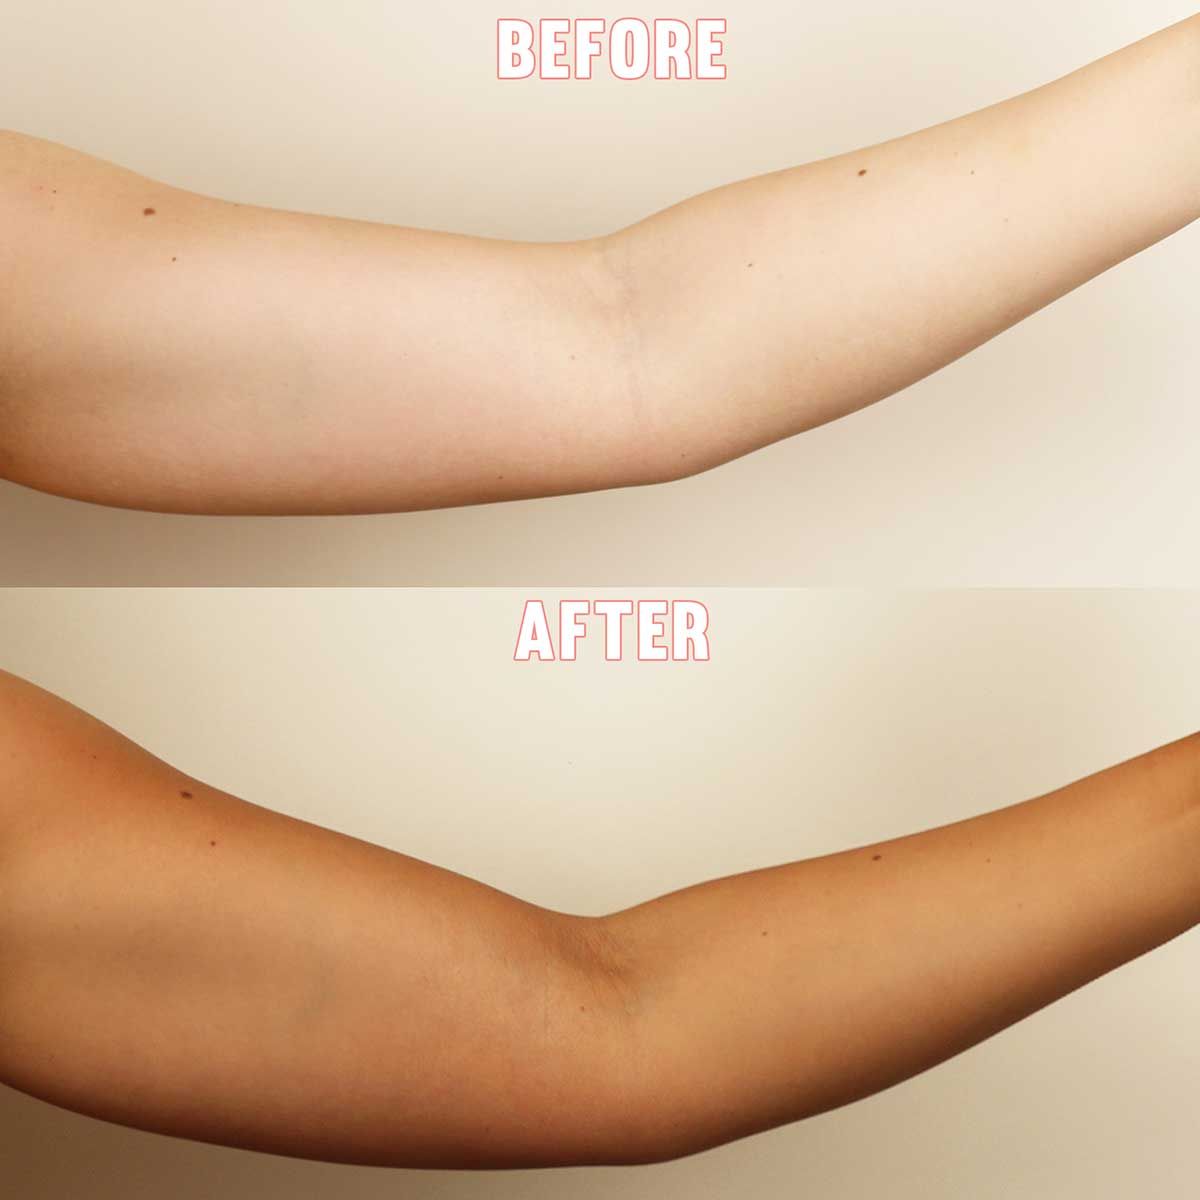 HOW TO REMOVE SKIN TANNING